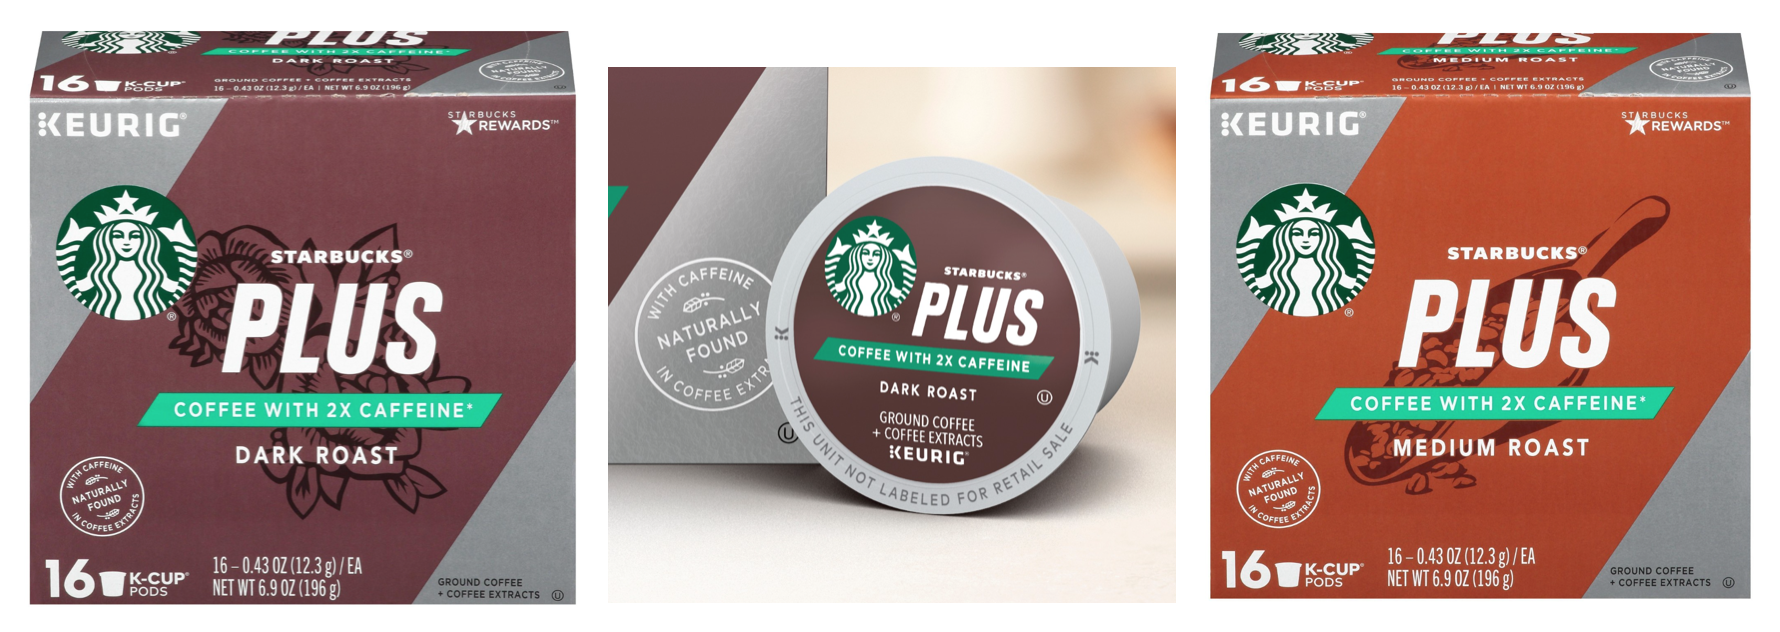 graphic regarding Starbucks K Cups Printable Coupons named Fresh new $1.50/1 Starbucks Additionally Espresso K-Cup Pods Printable